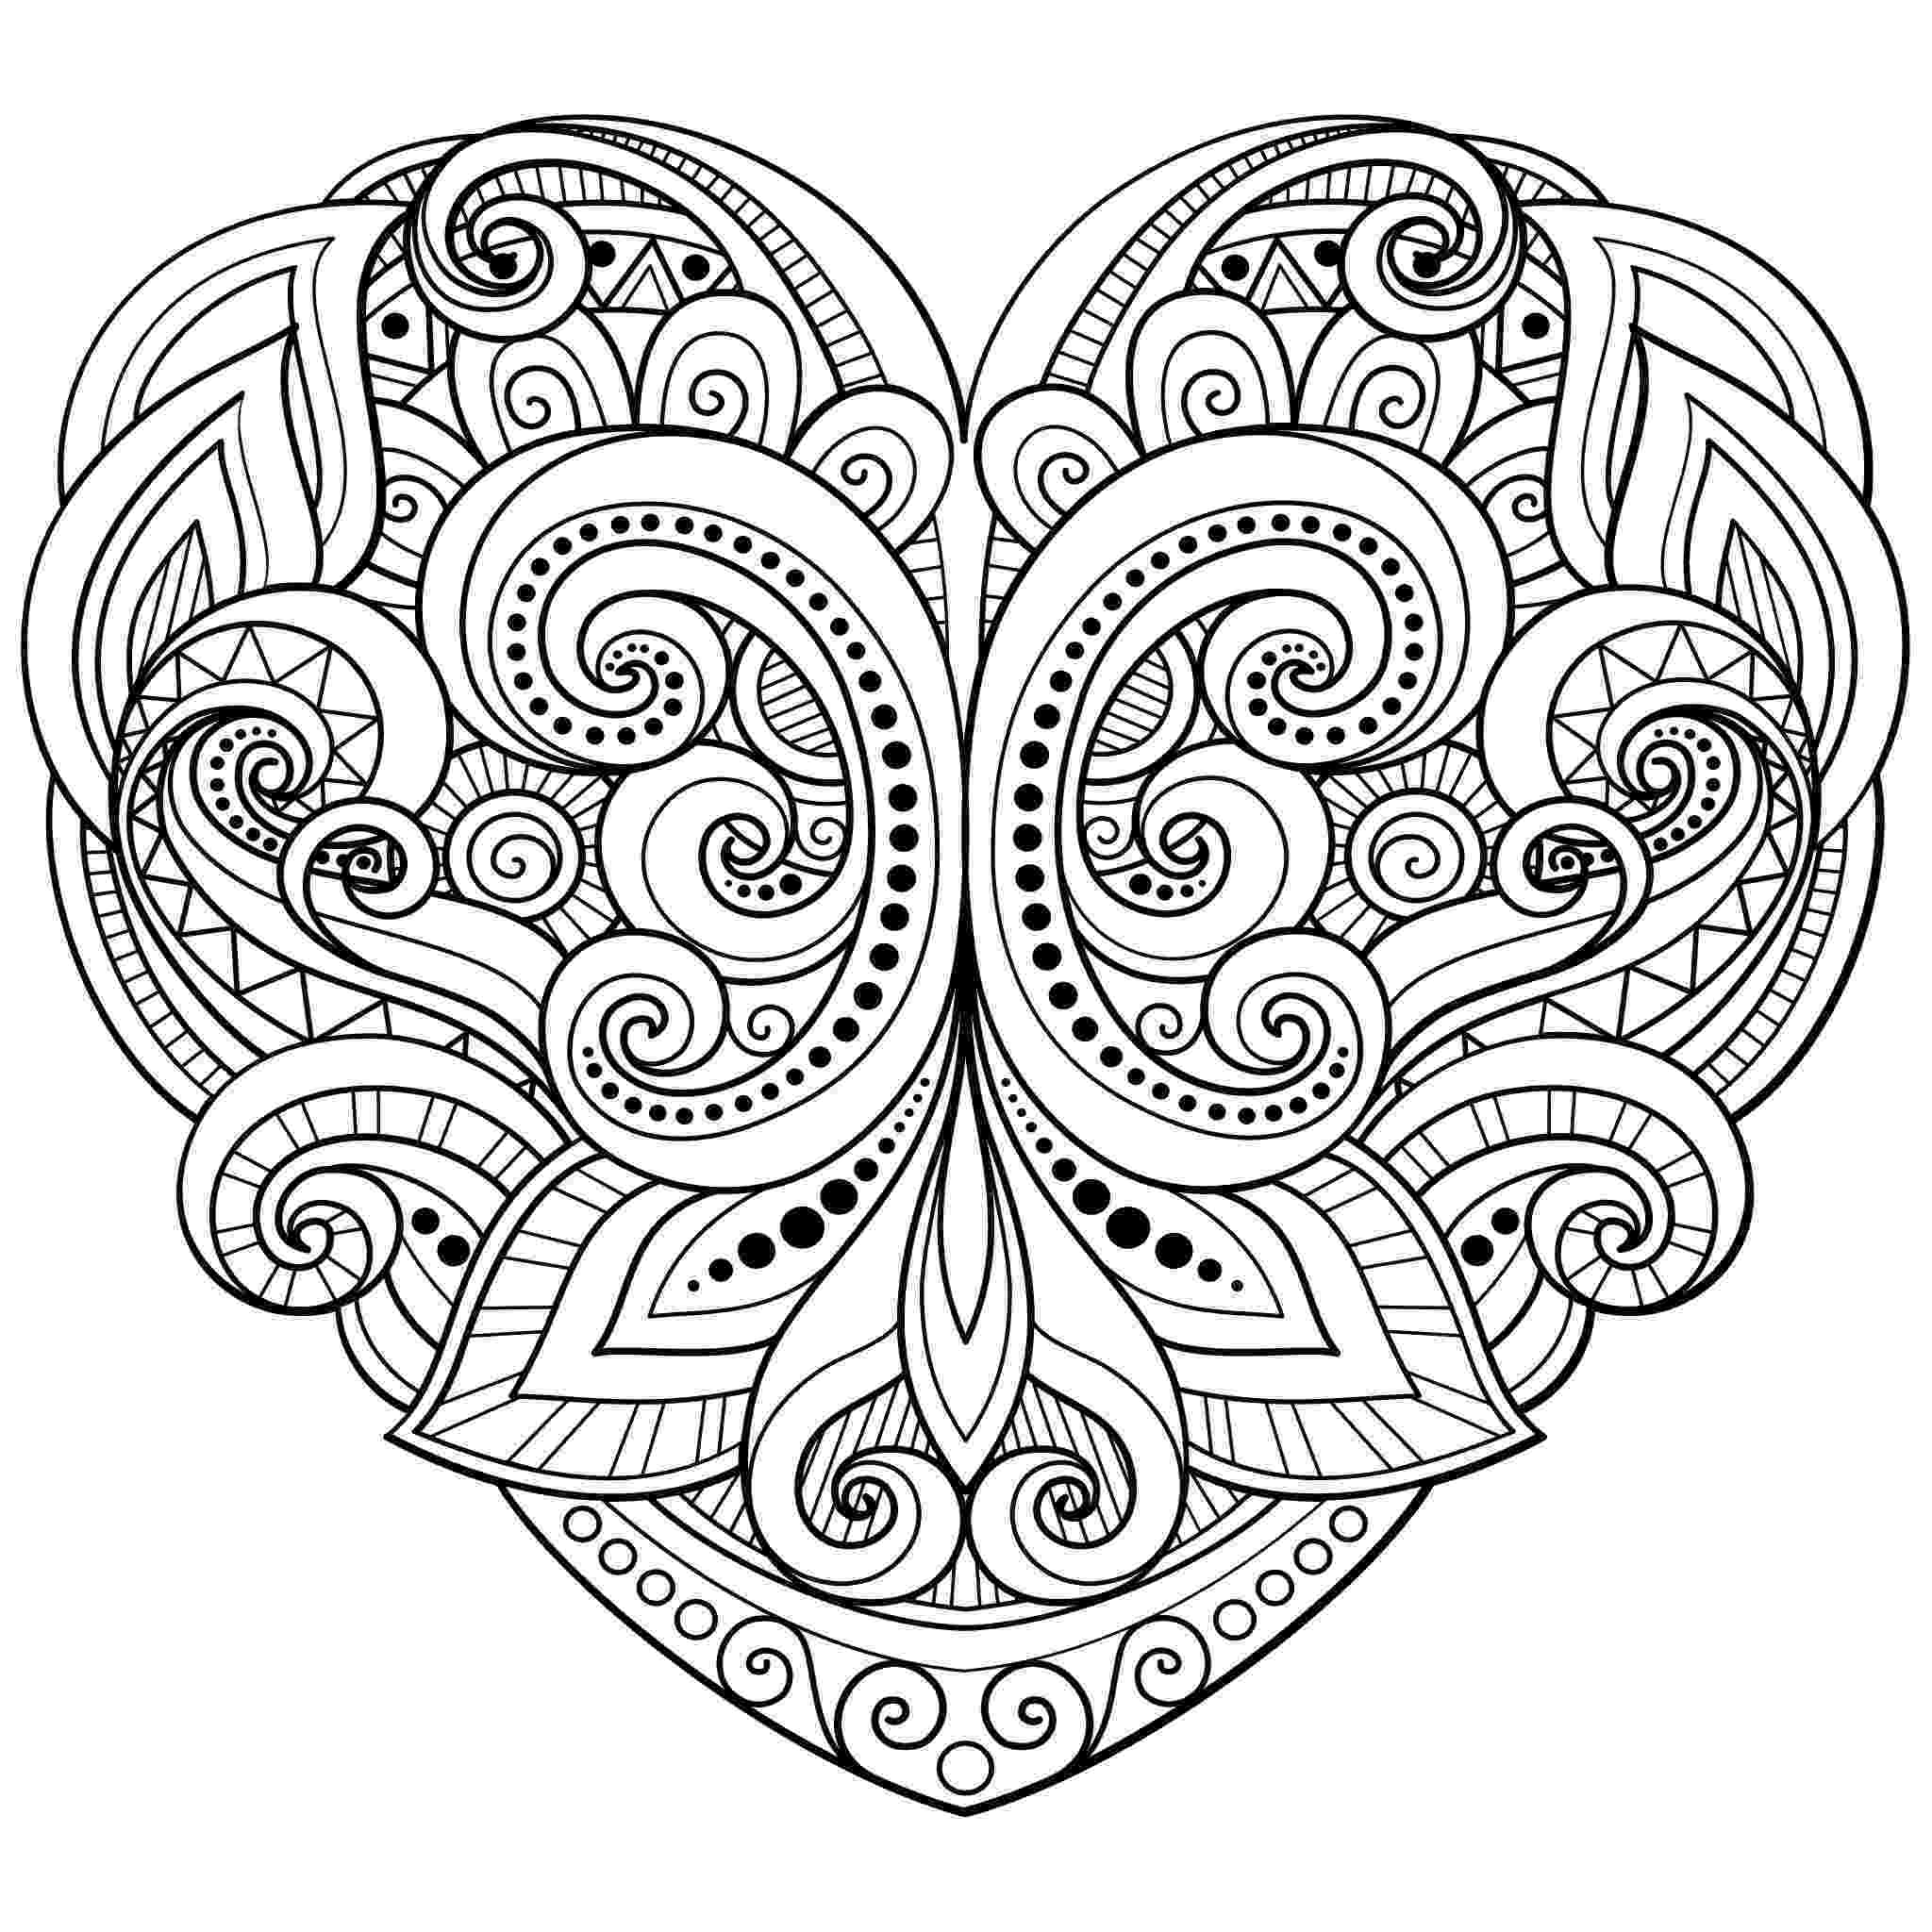 free coloring pages hearts love heart coloring page heart coloring pages love coloring hearts free pages